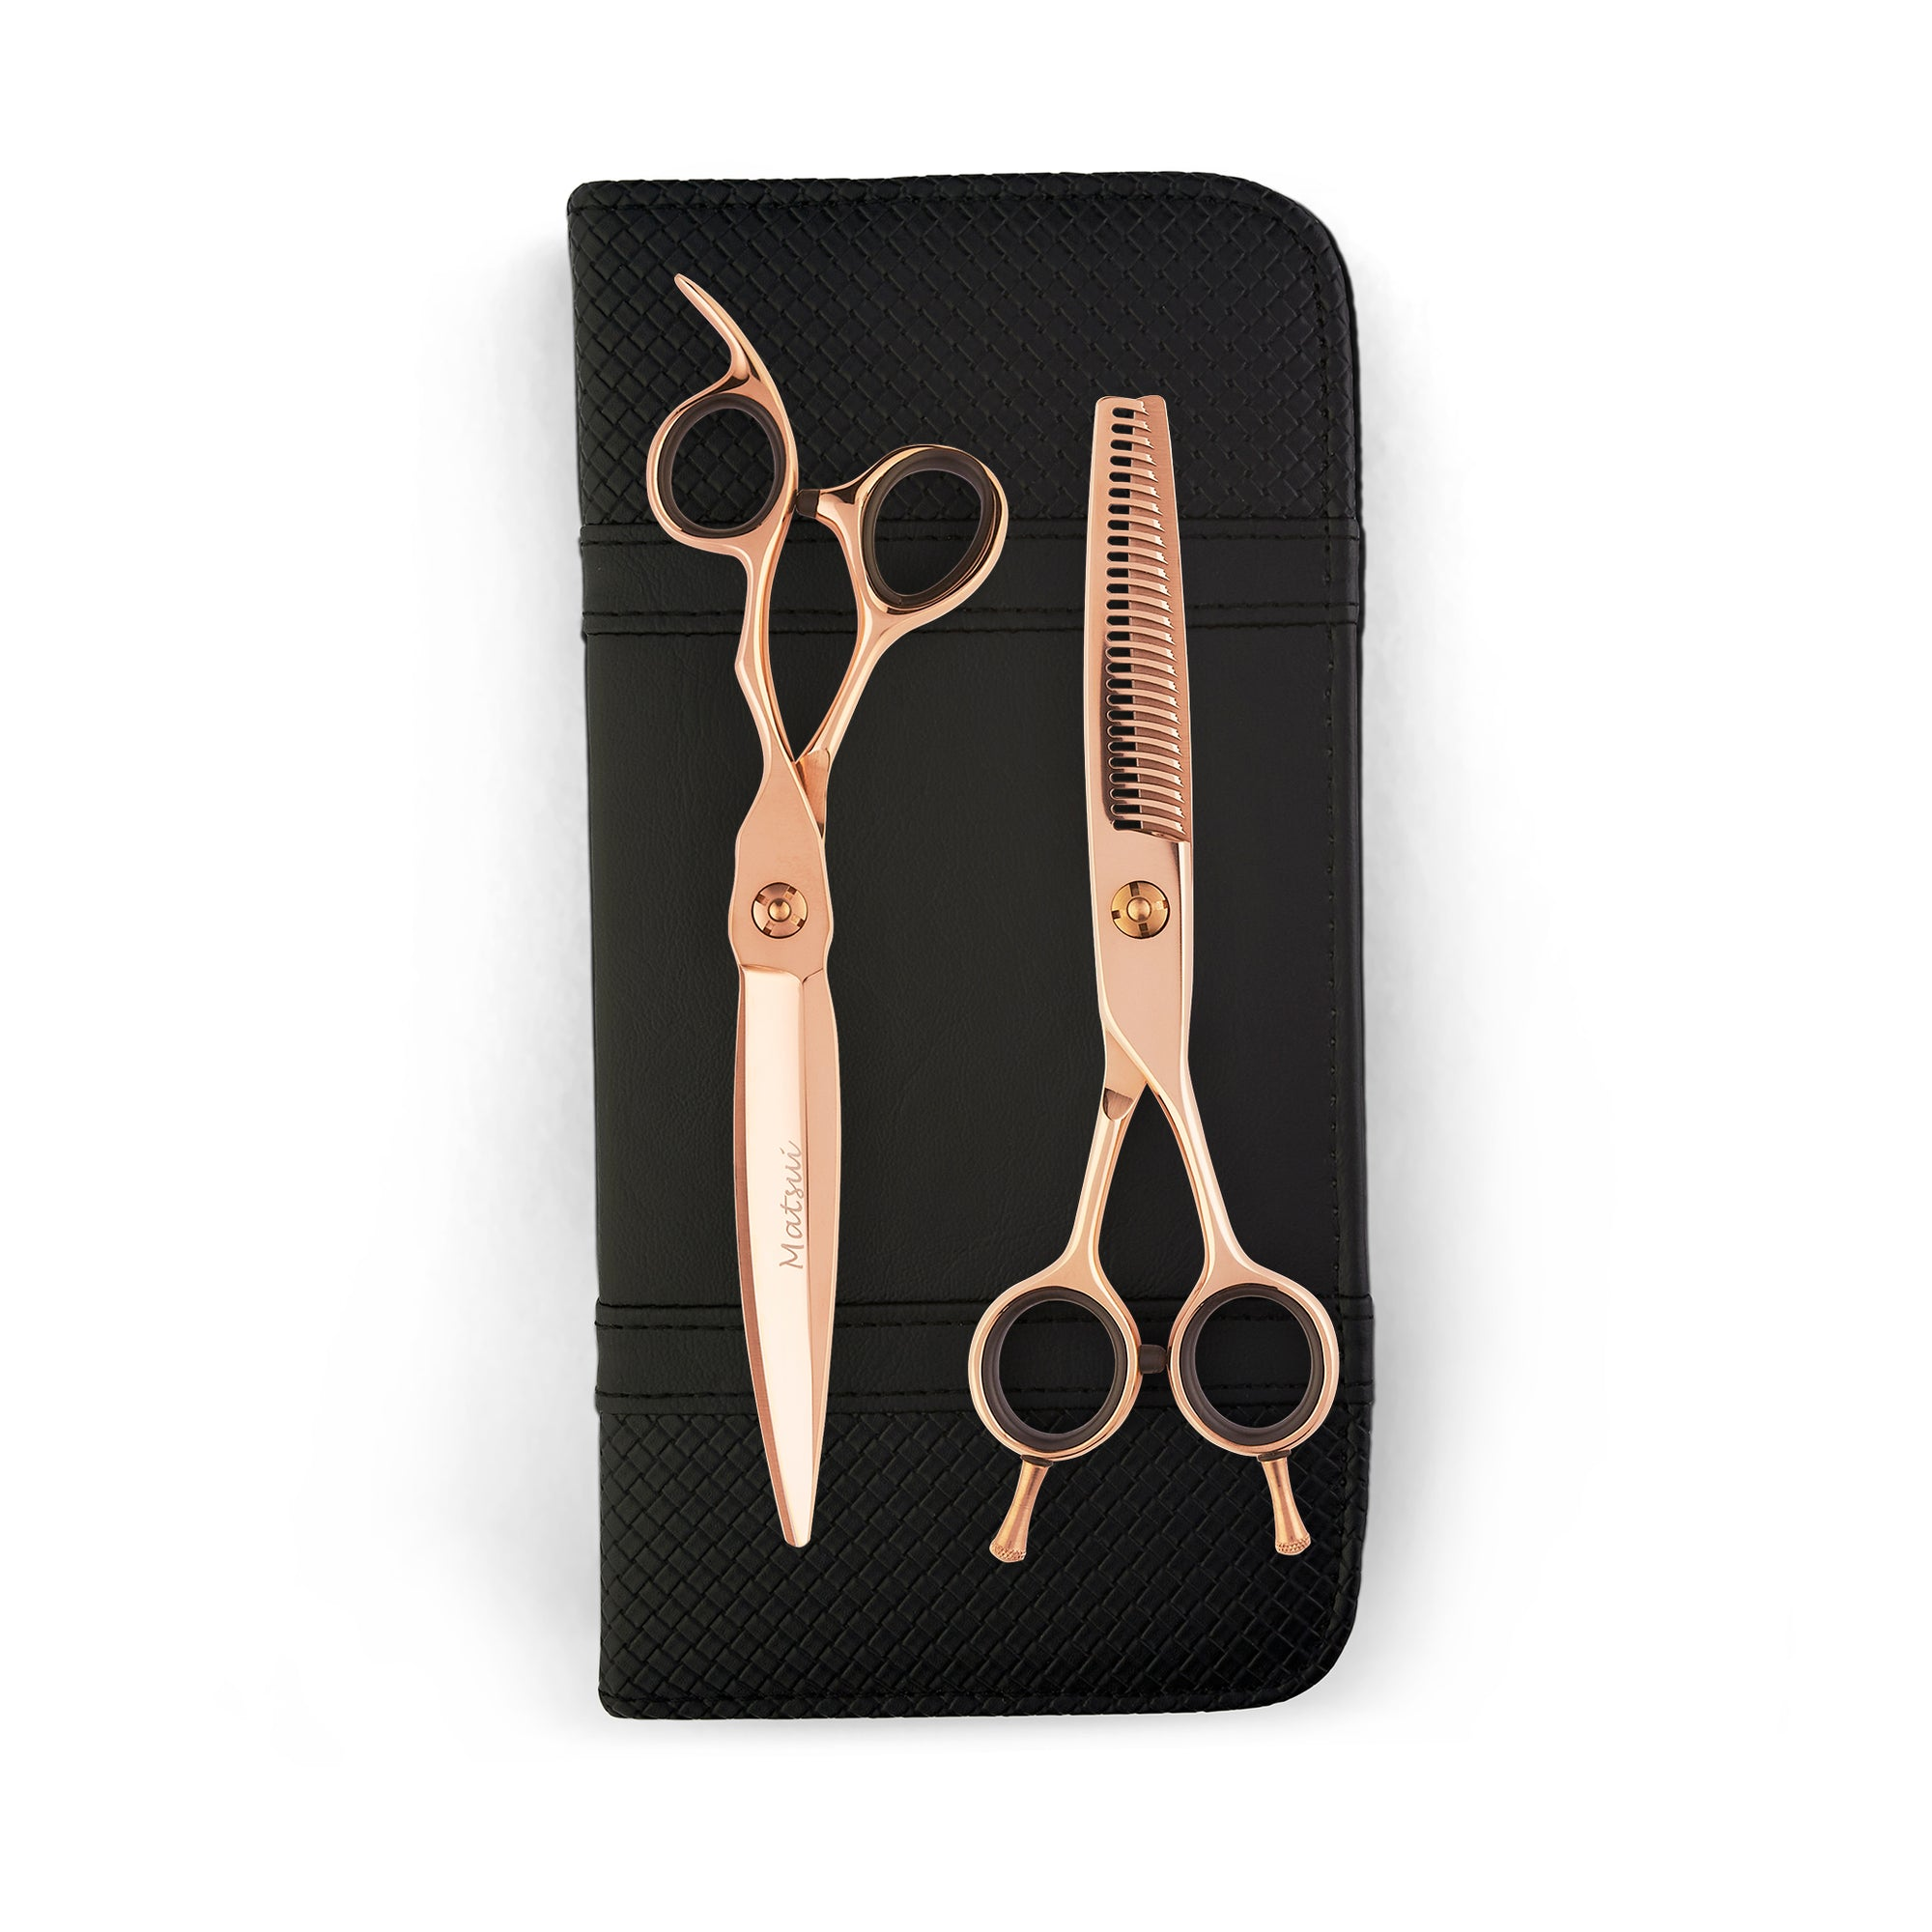 Matsui VG10 Sword Scissor Thinner Combo - Rose Gold (4540276899901)